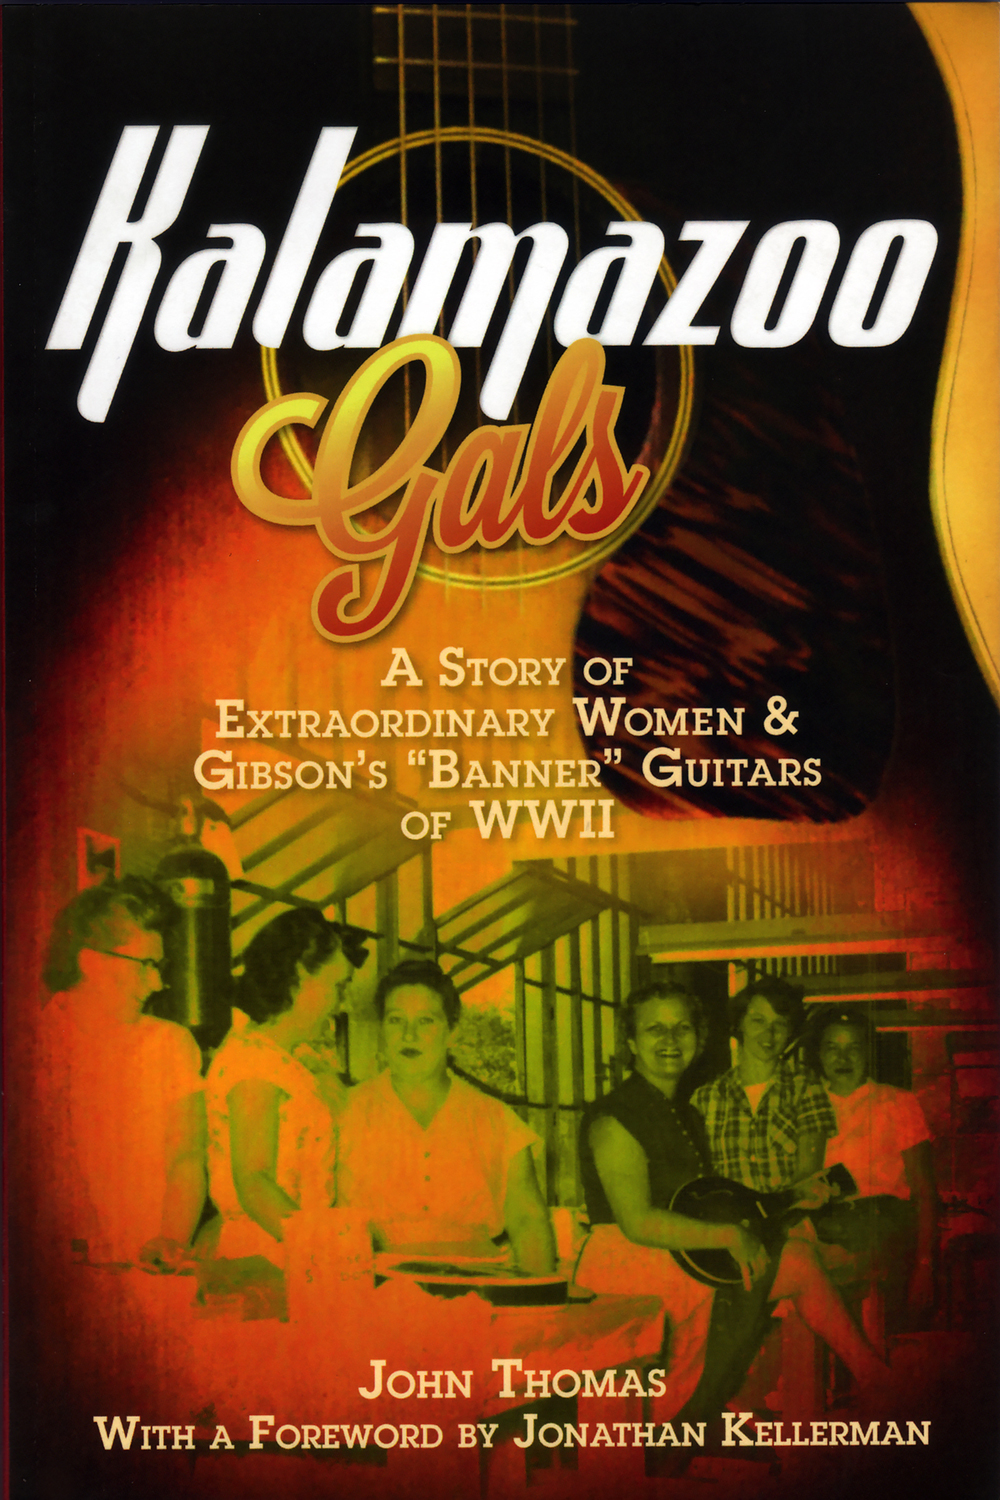 Kalamazoo Gals: A Story of Extraordinary Women & Gibson's 'Banner' Guitars of WWII